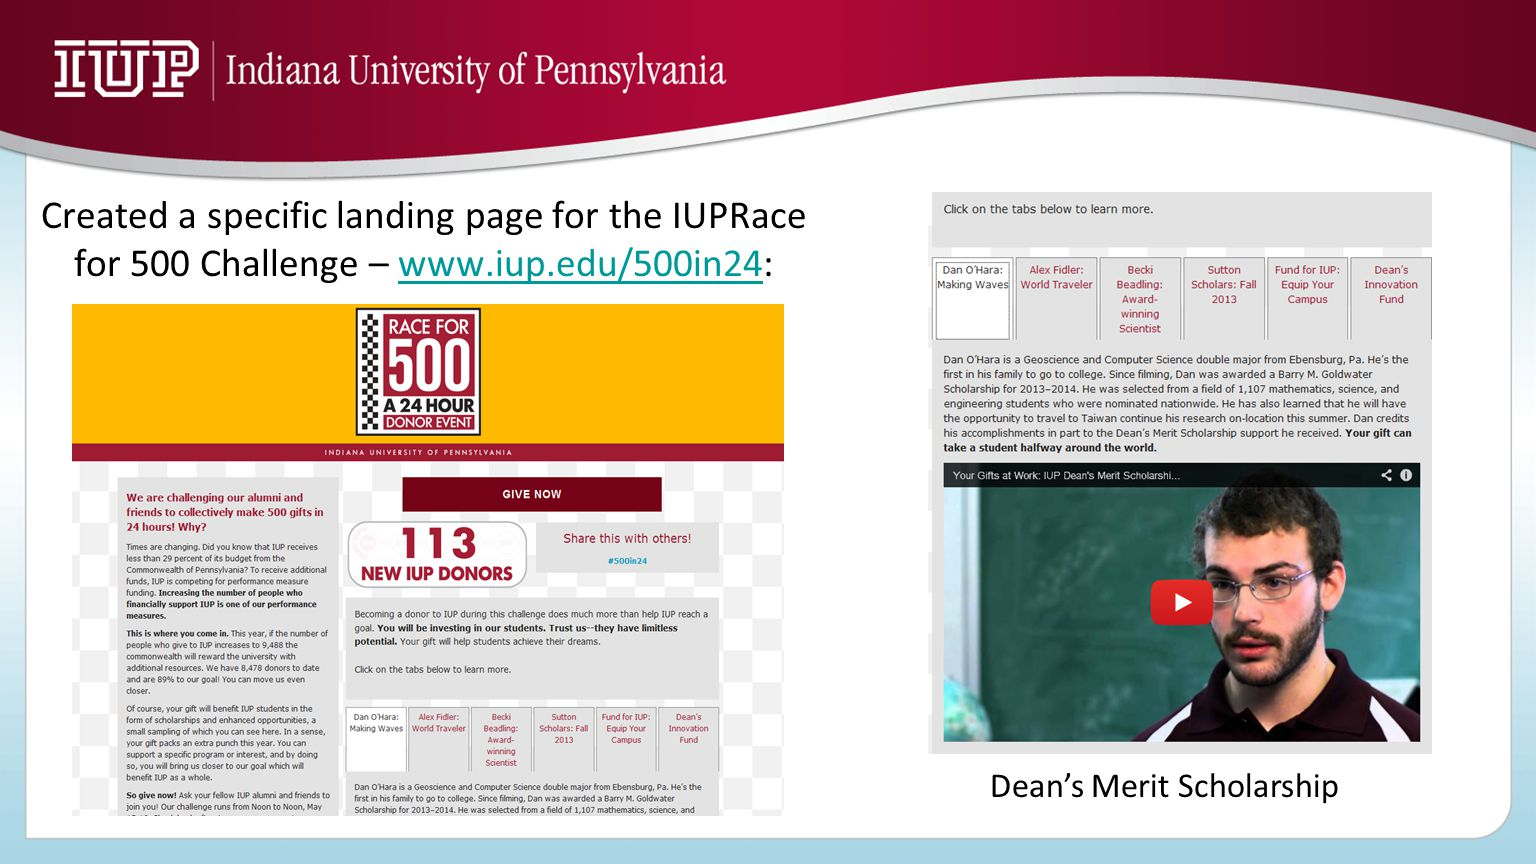 Created a specific landing page for the IUPRace for 500 Challenge – www.iup.edu/500in24:www.iup.edu/500in24 Dean's Merit Scholarship